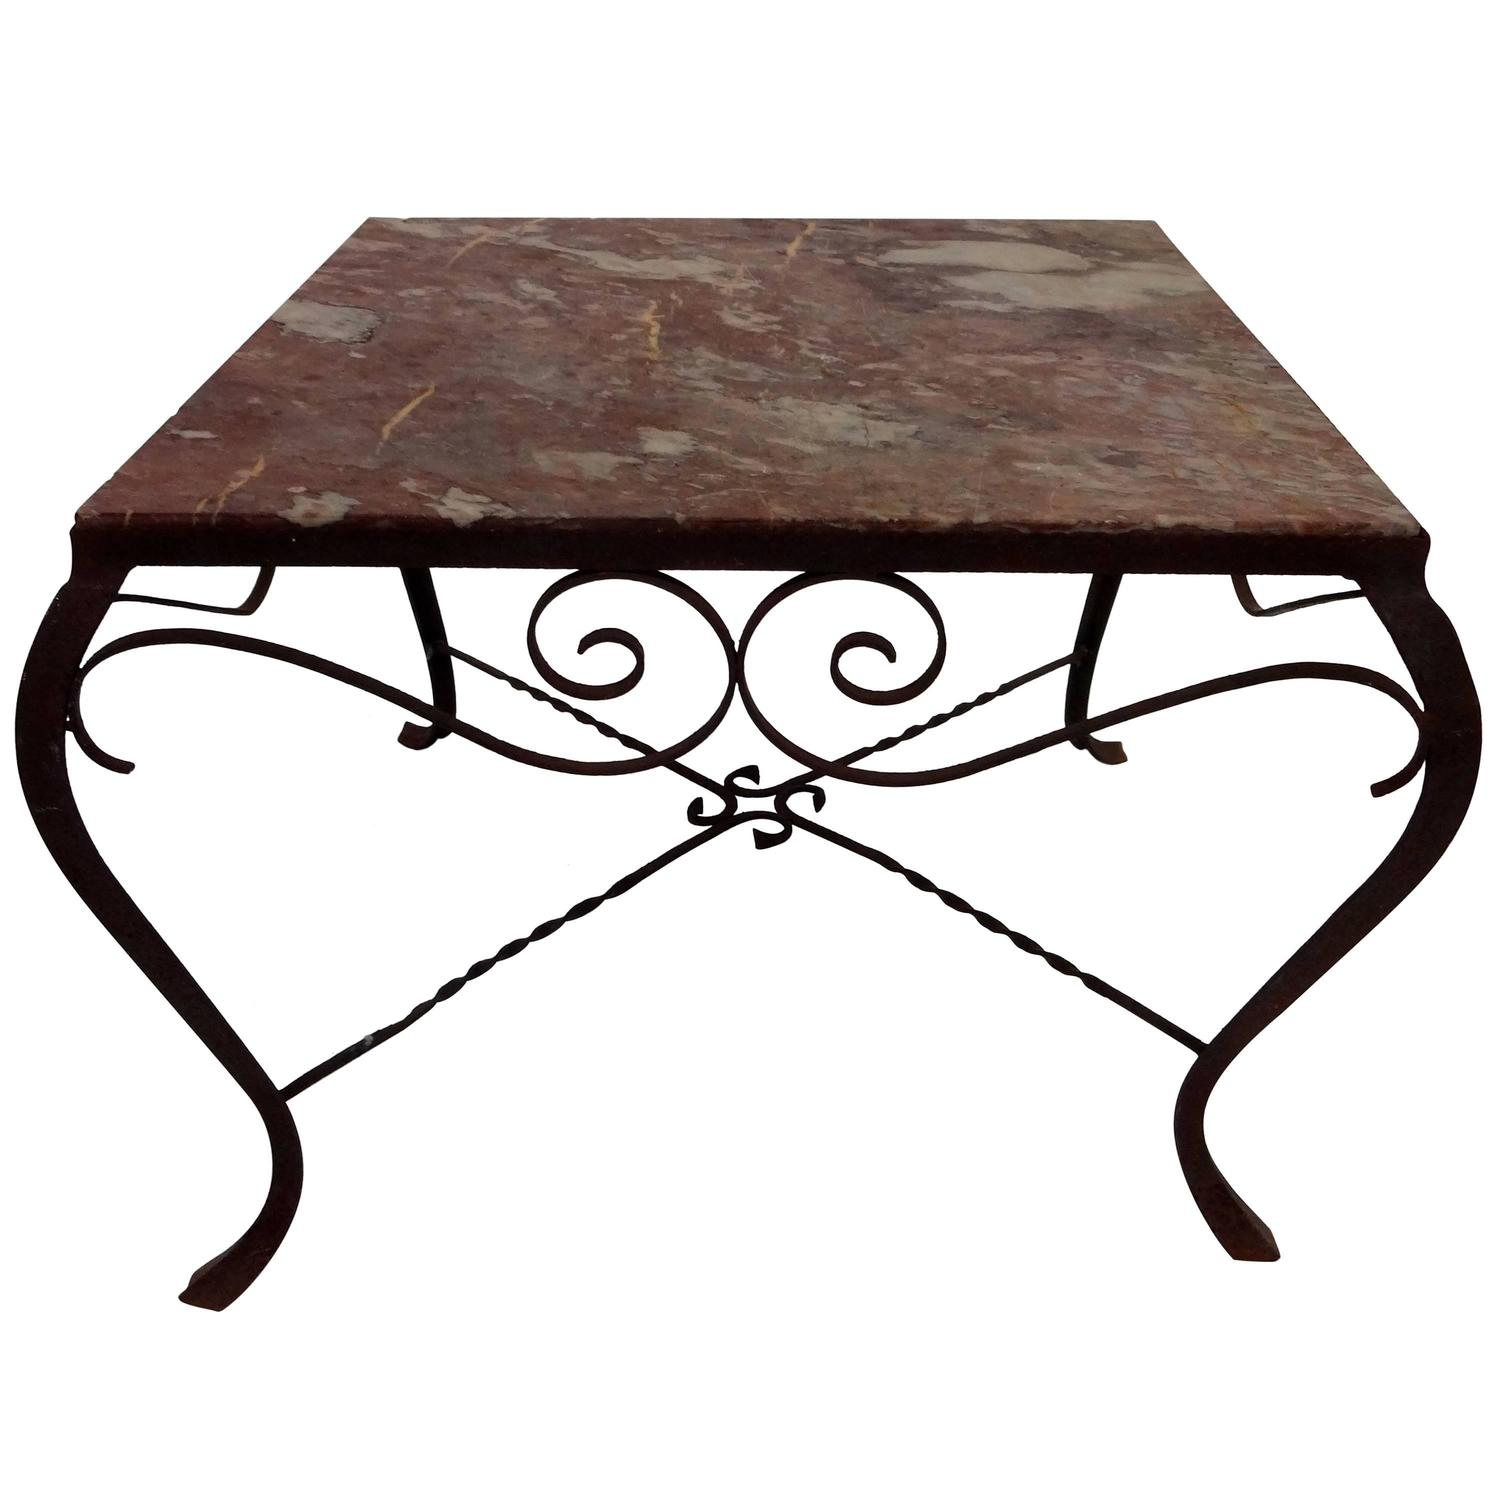 French wrought iron marble top coffee table at 1stdibs for Marble and wrought iron coffee table